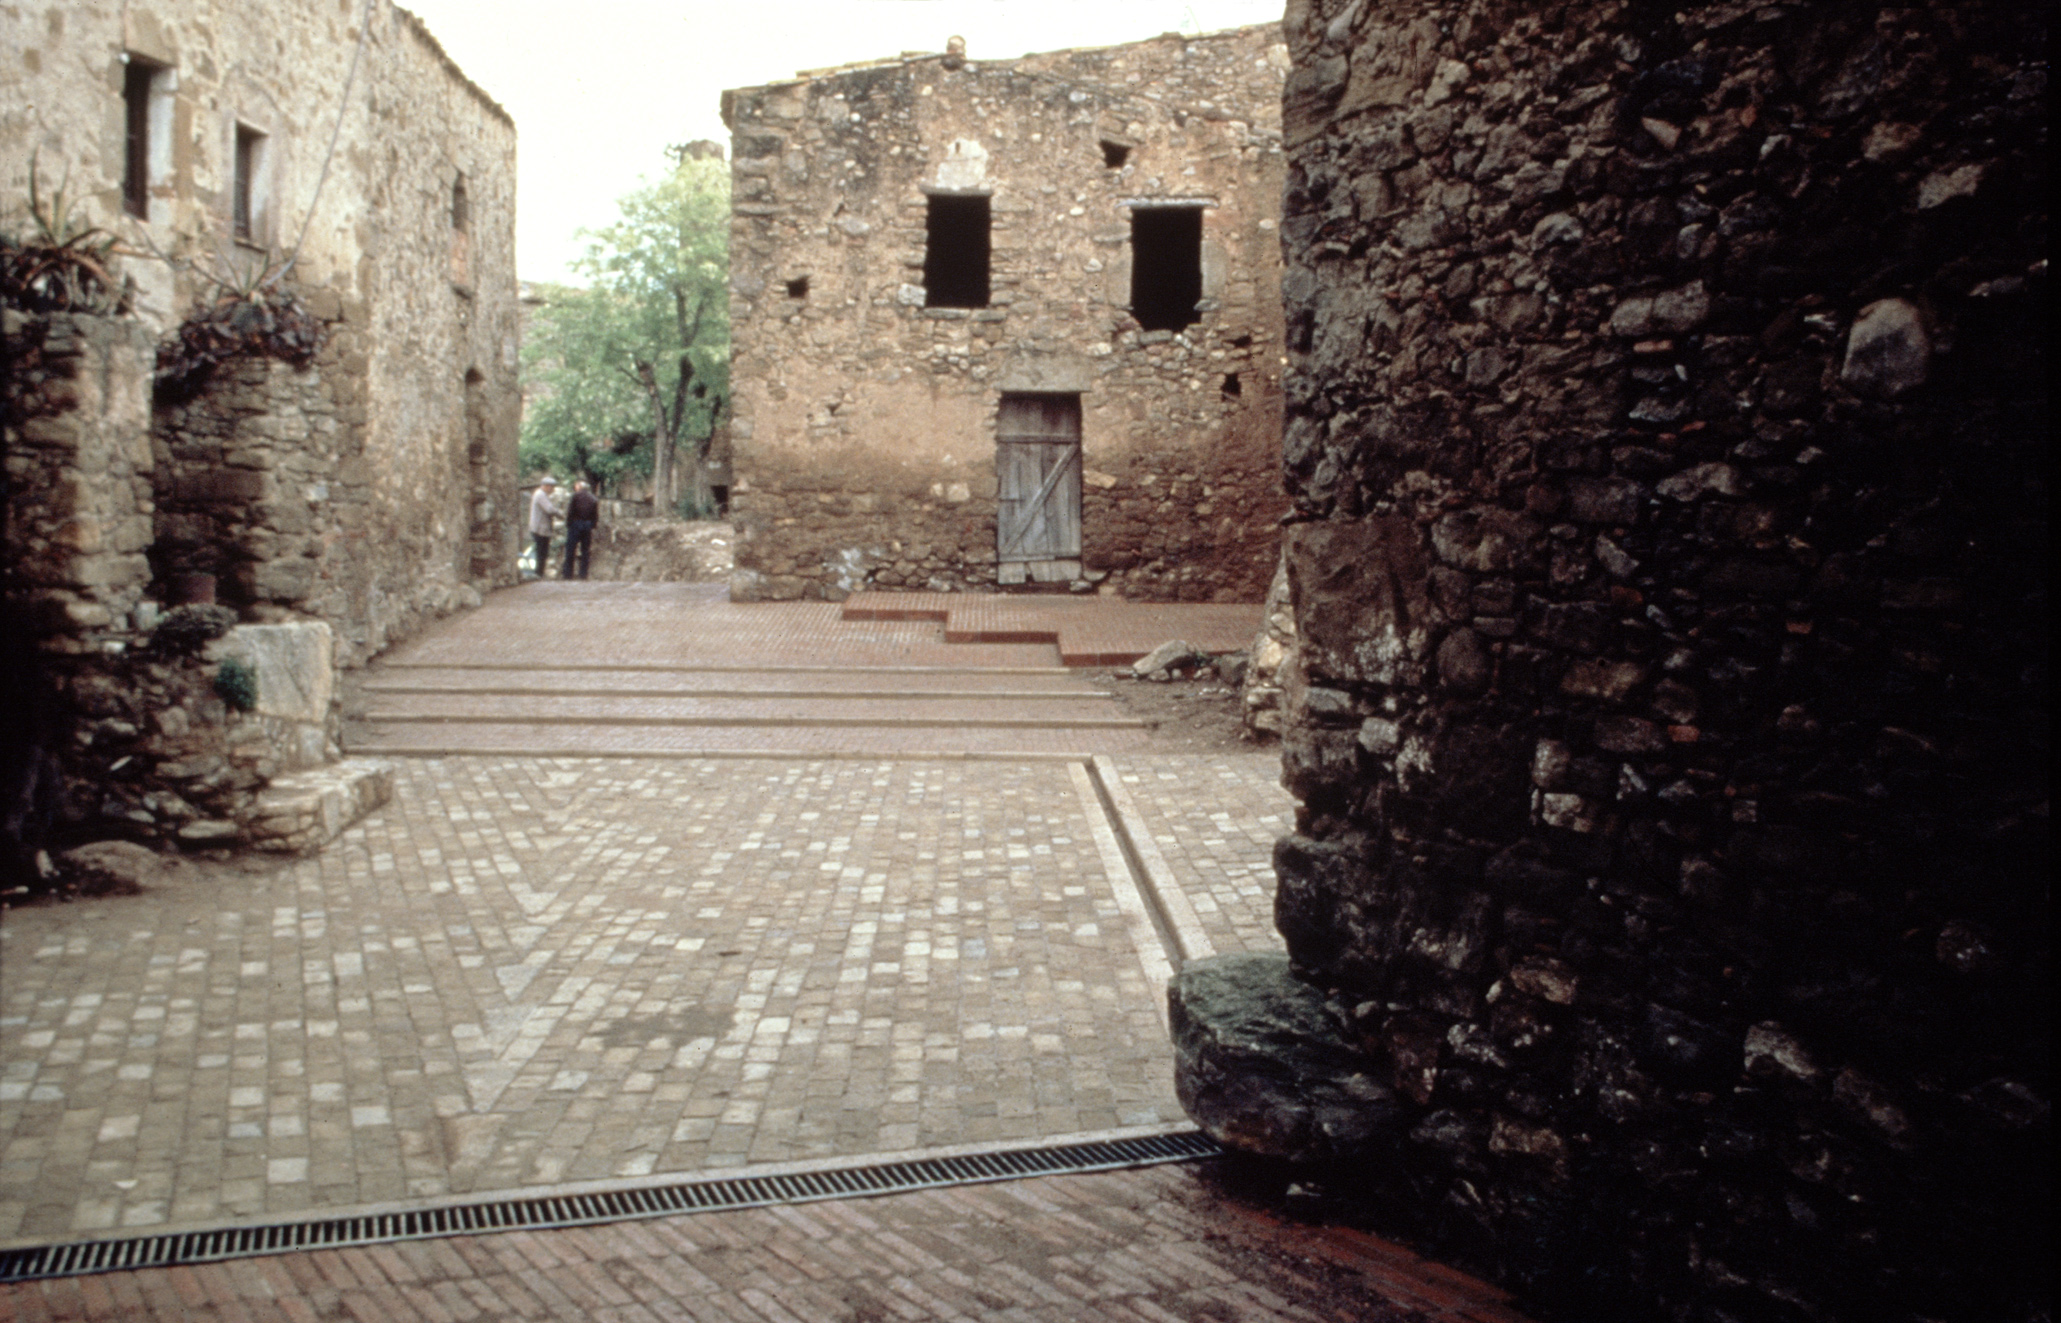 Development of the medieval town of Ullastret Girona  Mateo Arquitectura